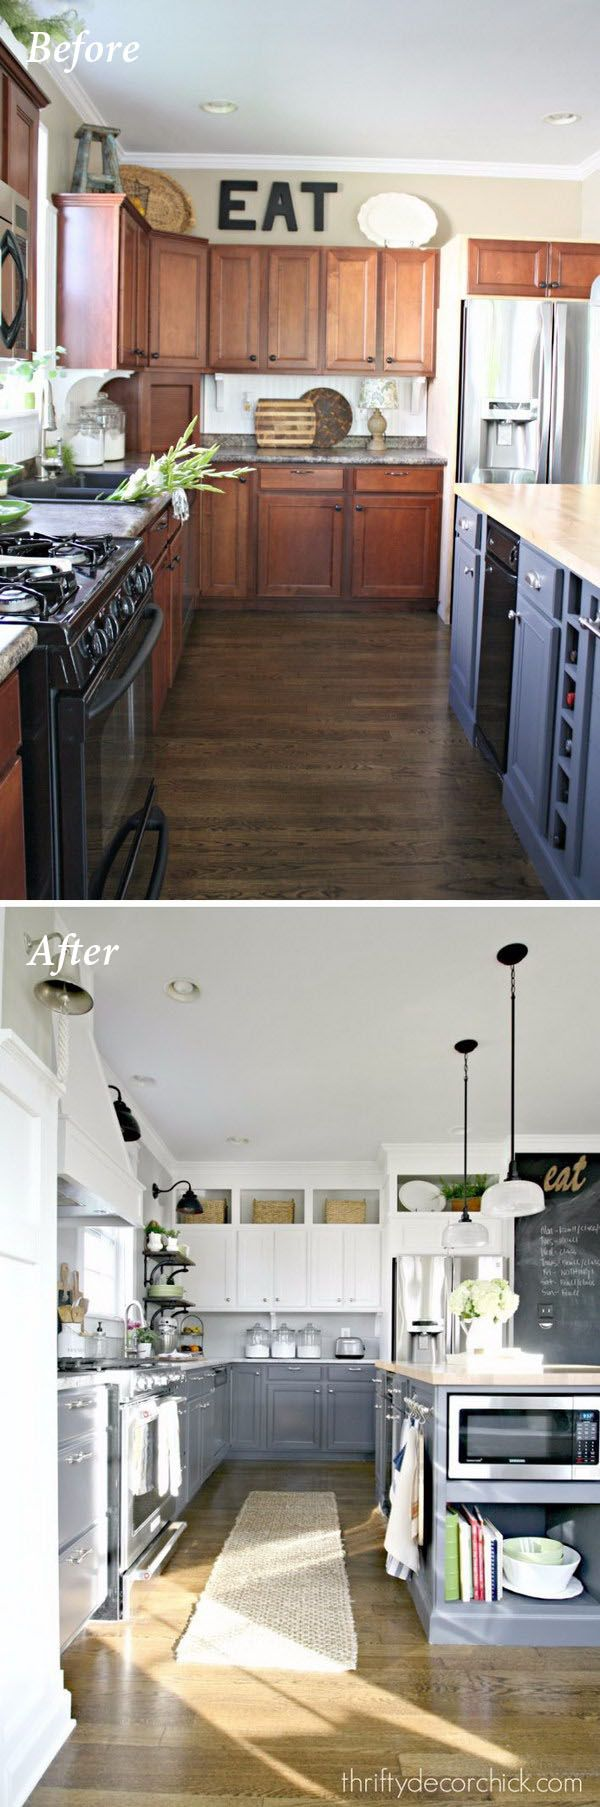 best 25 building cabinets ideas on pinterest clever kitchen build cabinets up to the ceiling to add height to the kitchen